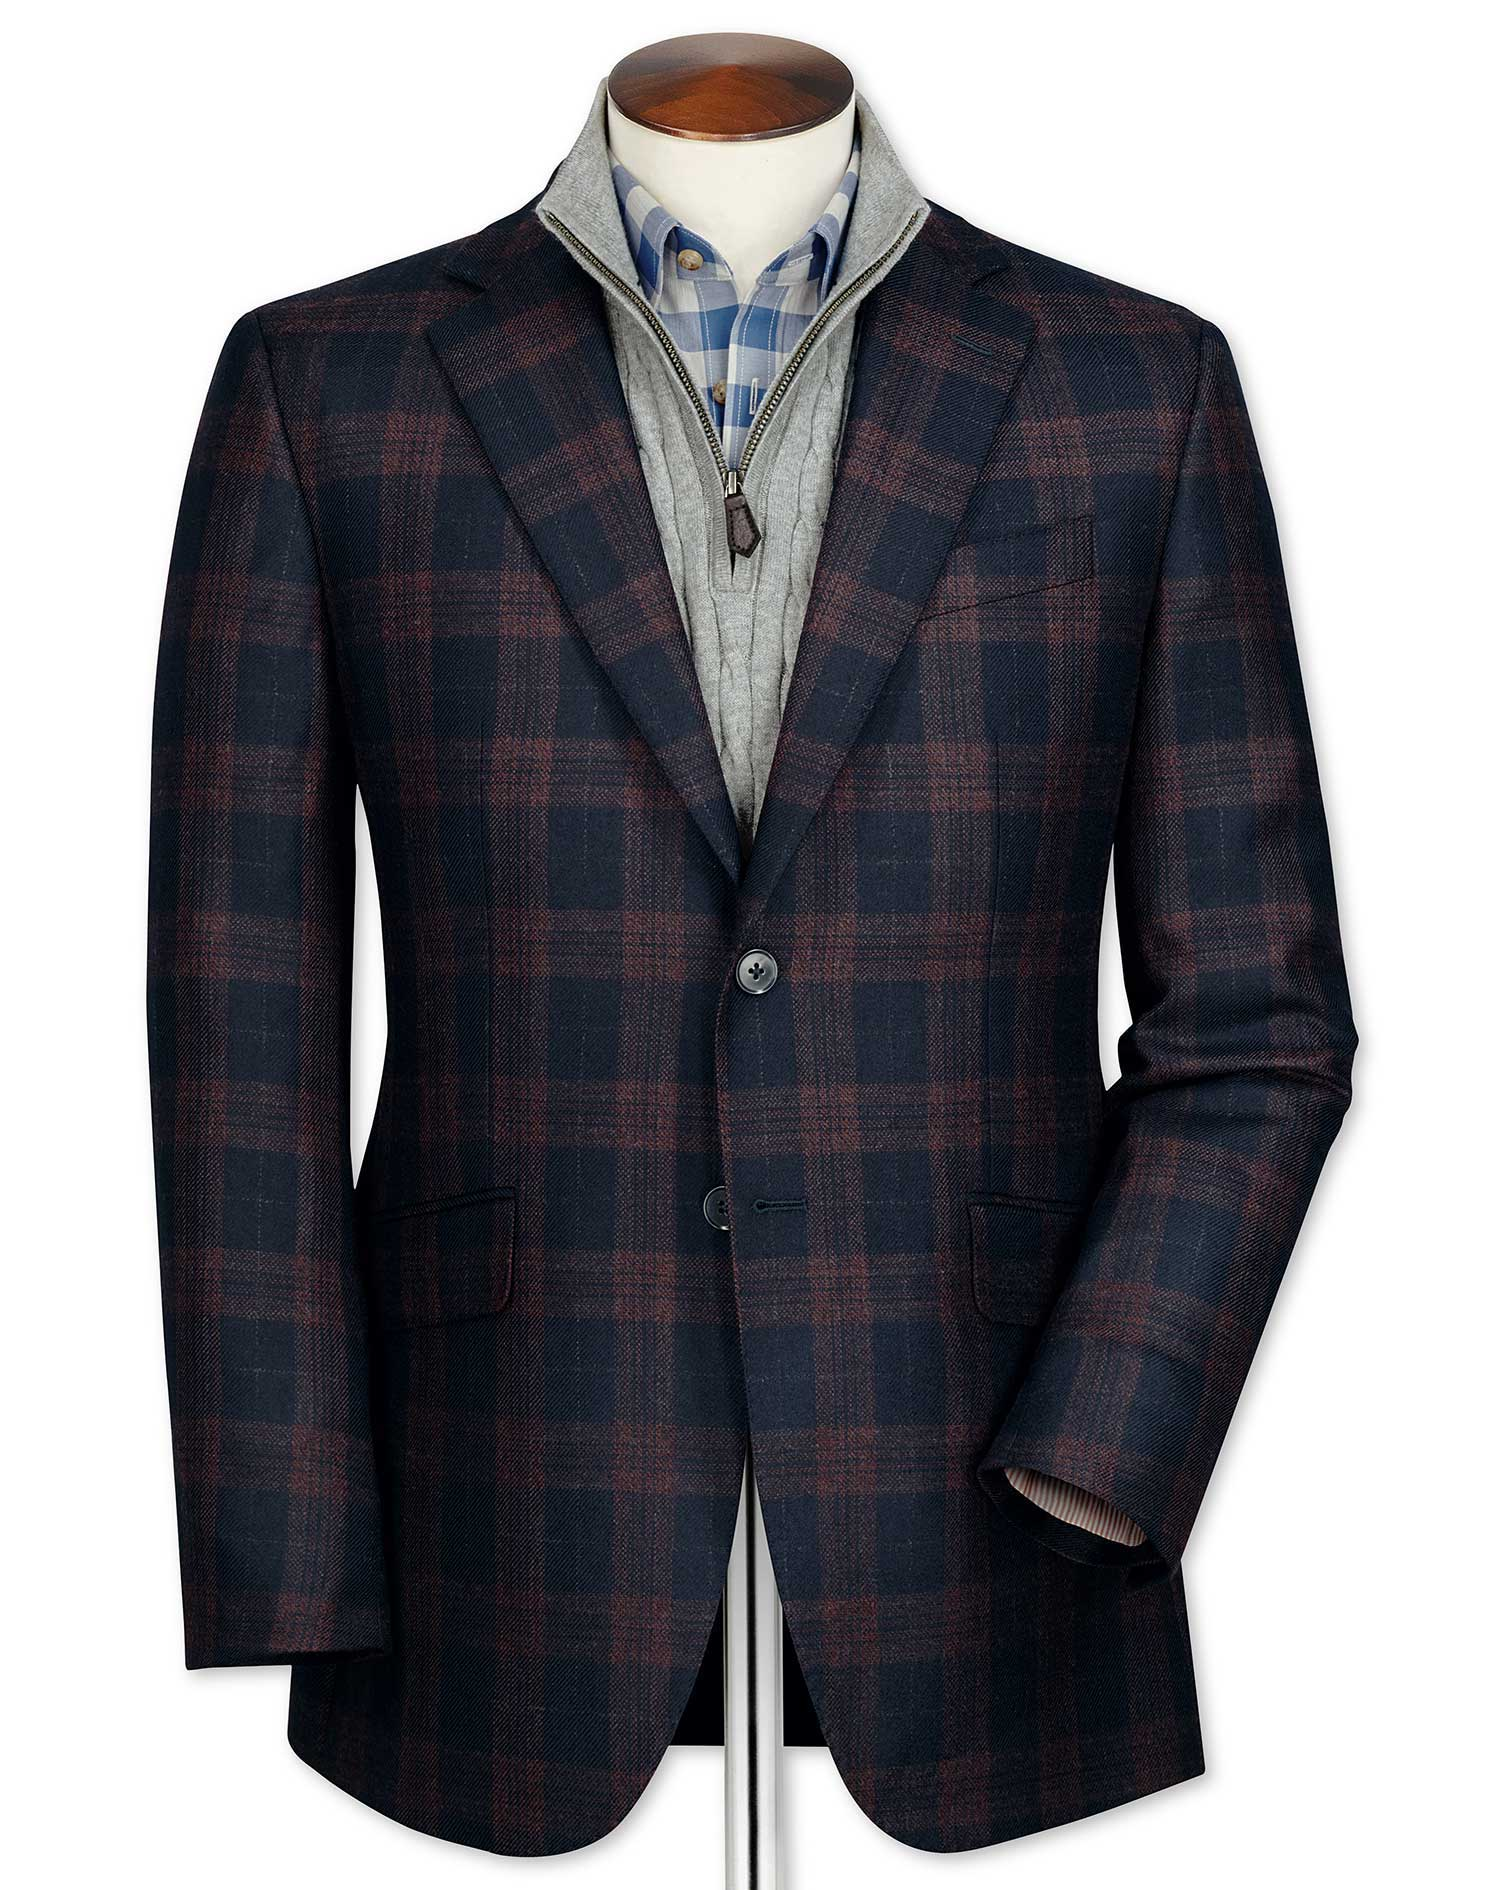 Classic Fit Navy Checkered Lambswool Wool Jacket Size 44 Long by Charles Tyrwhitt